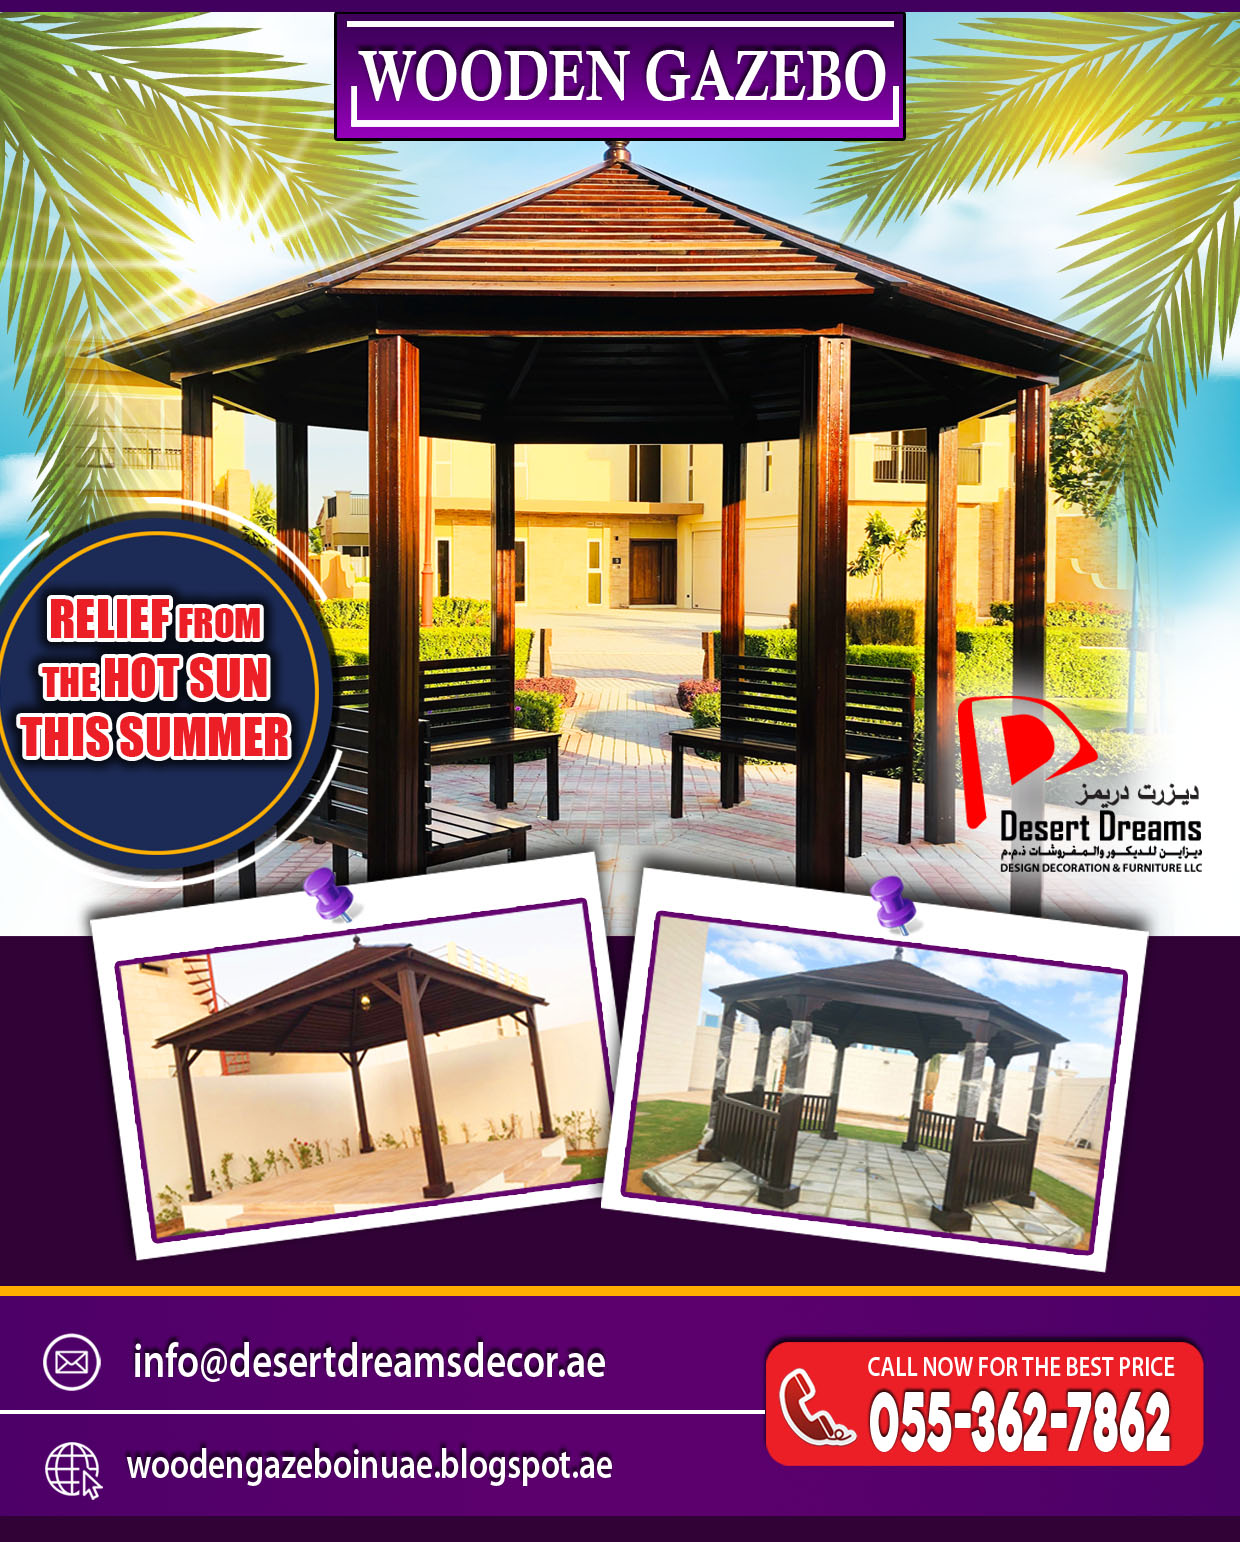 Sun Shades Wooden Gazebo in UAE.jpg